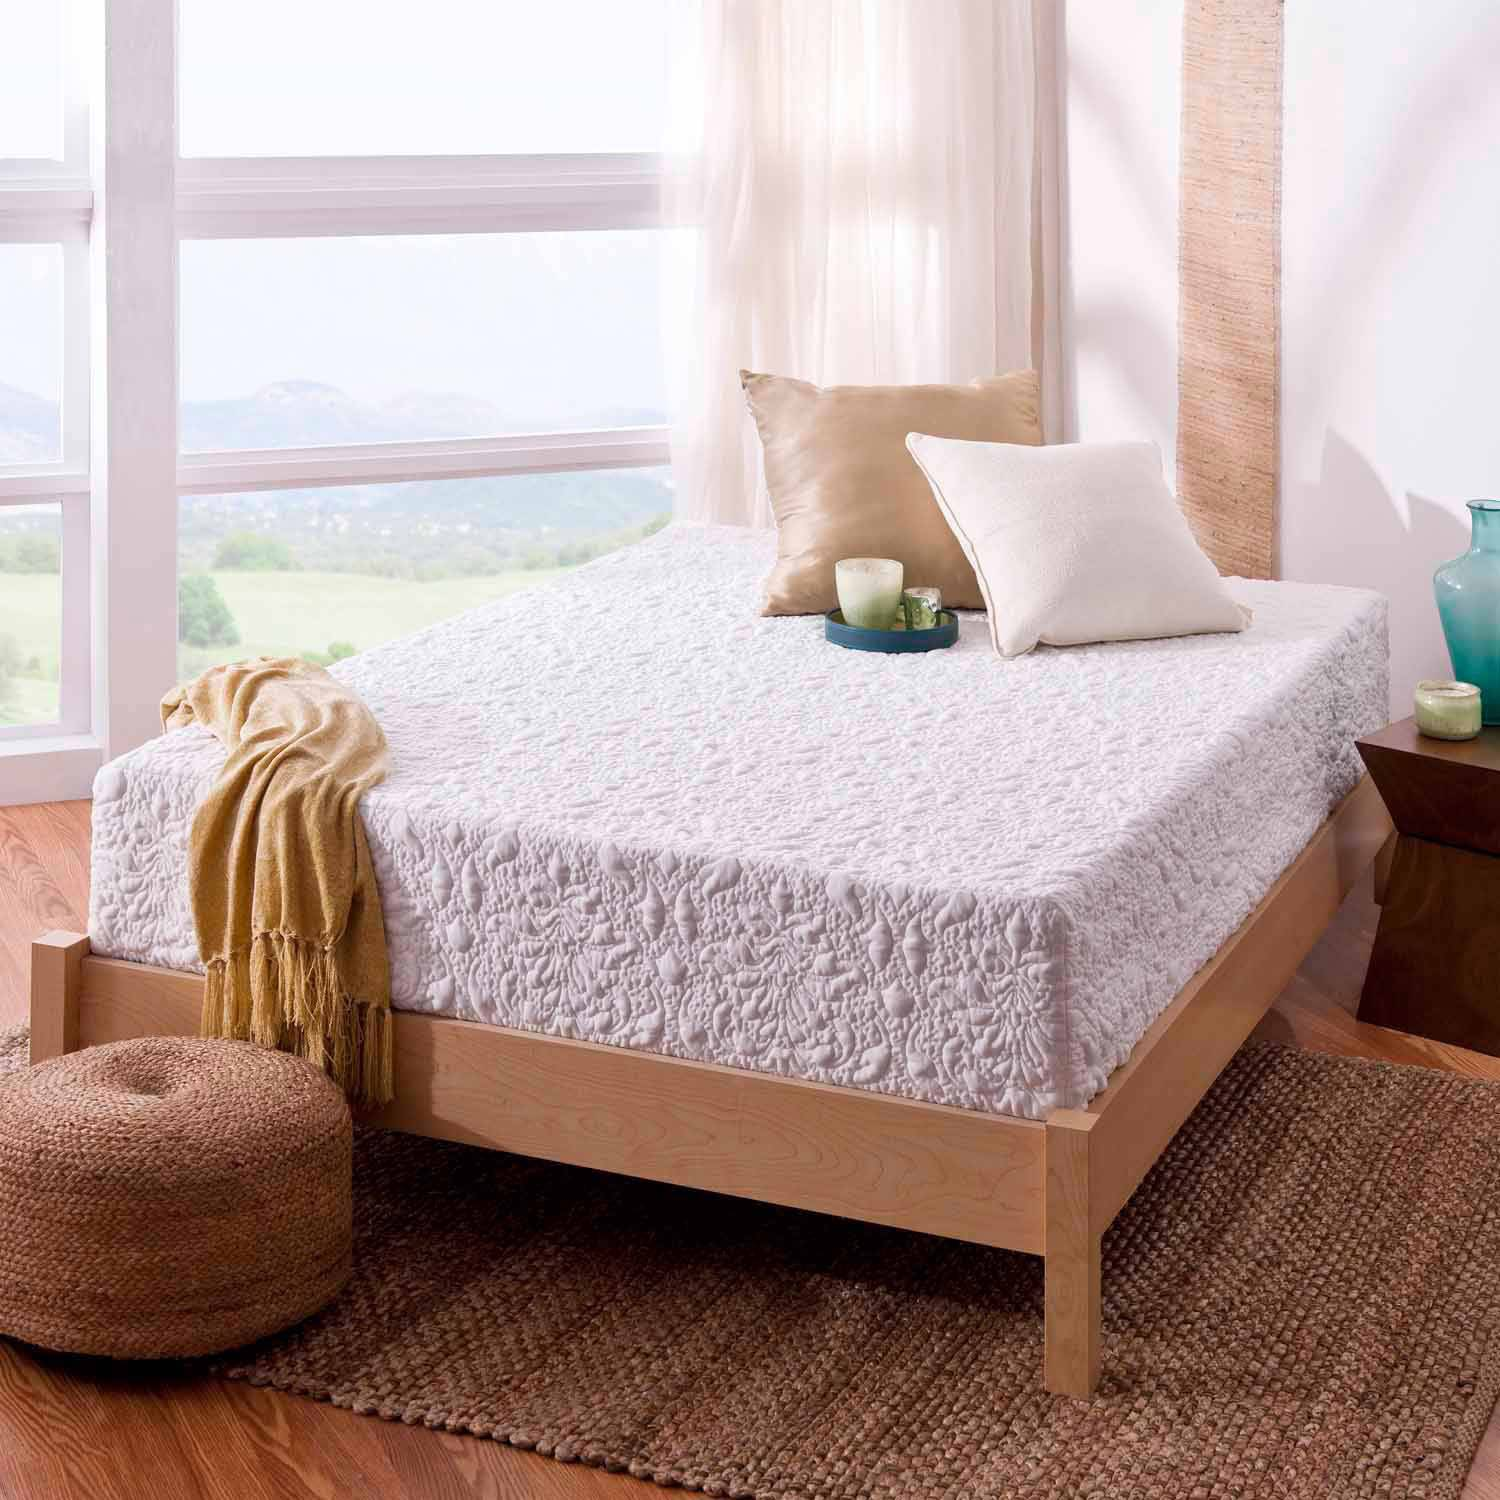 "12"" Spa Sensations Memory Foam Mattress (King, Queen, Full, Twin)  from $179 + Free Shipping"